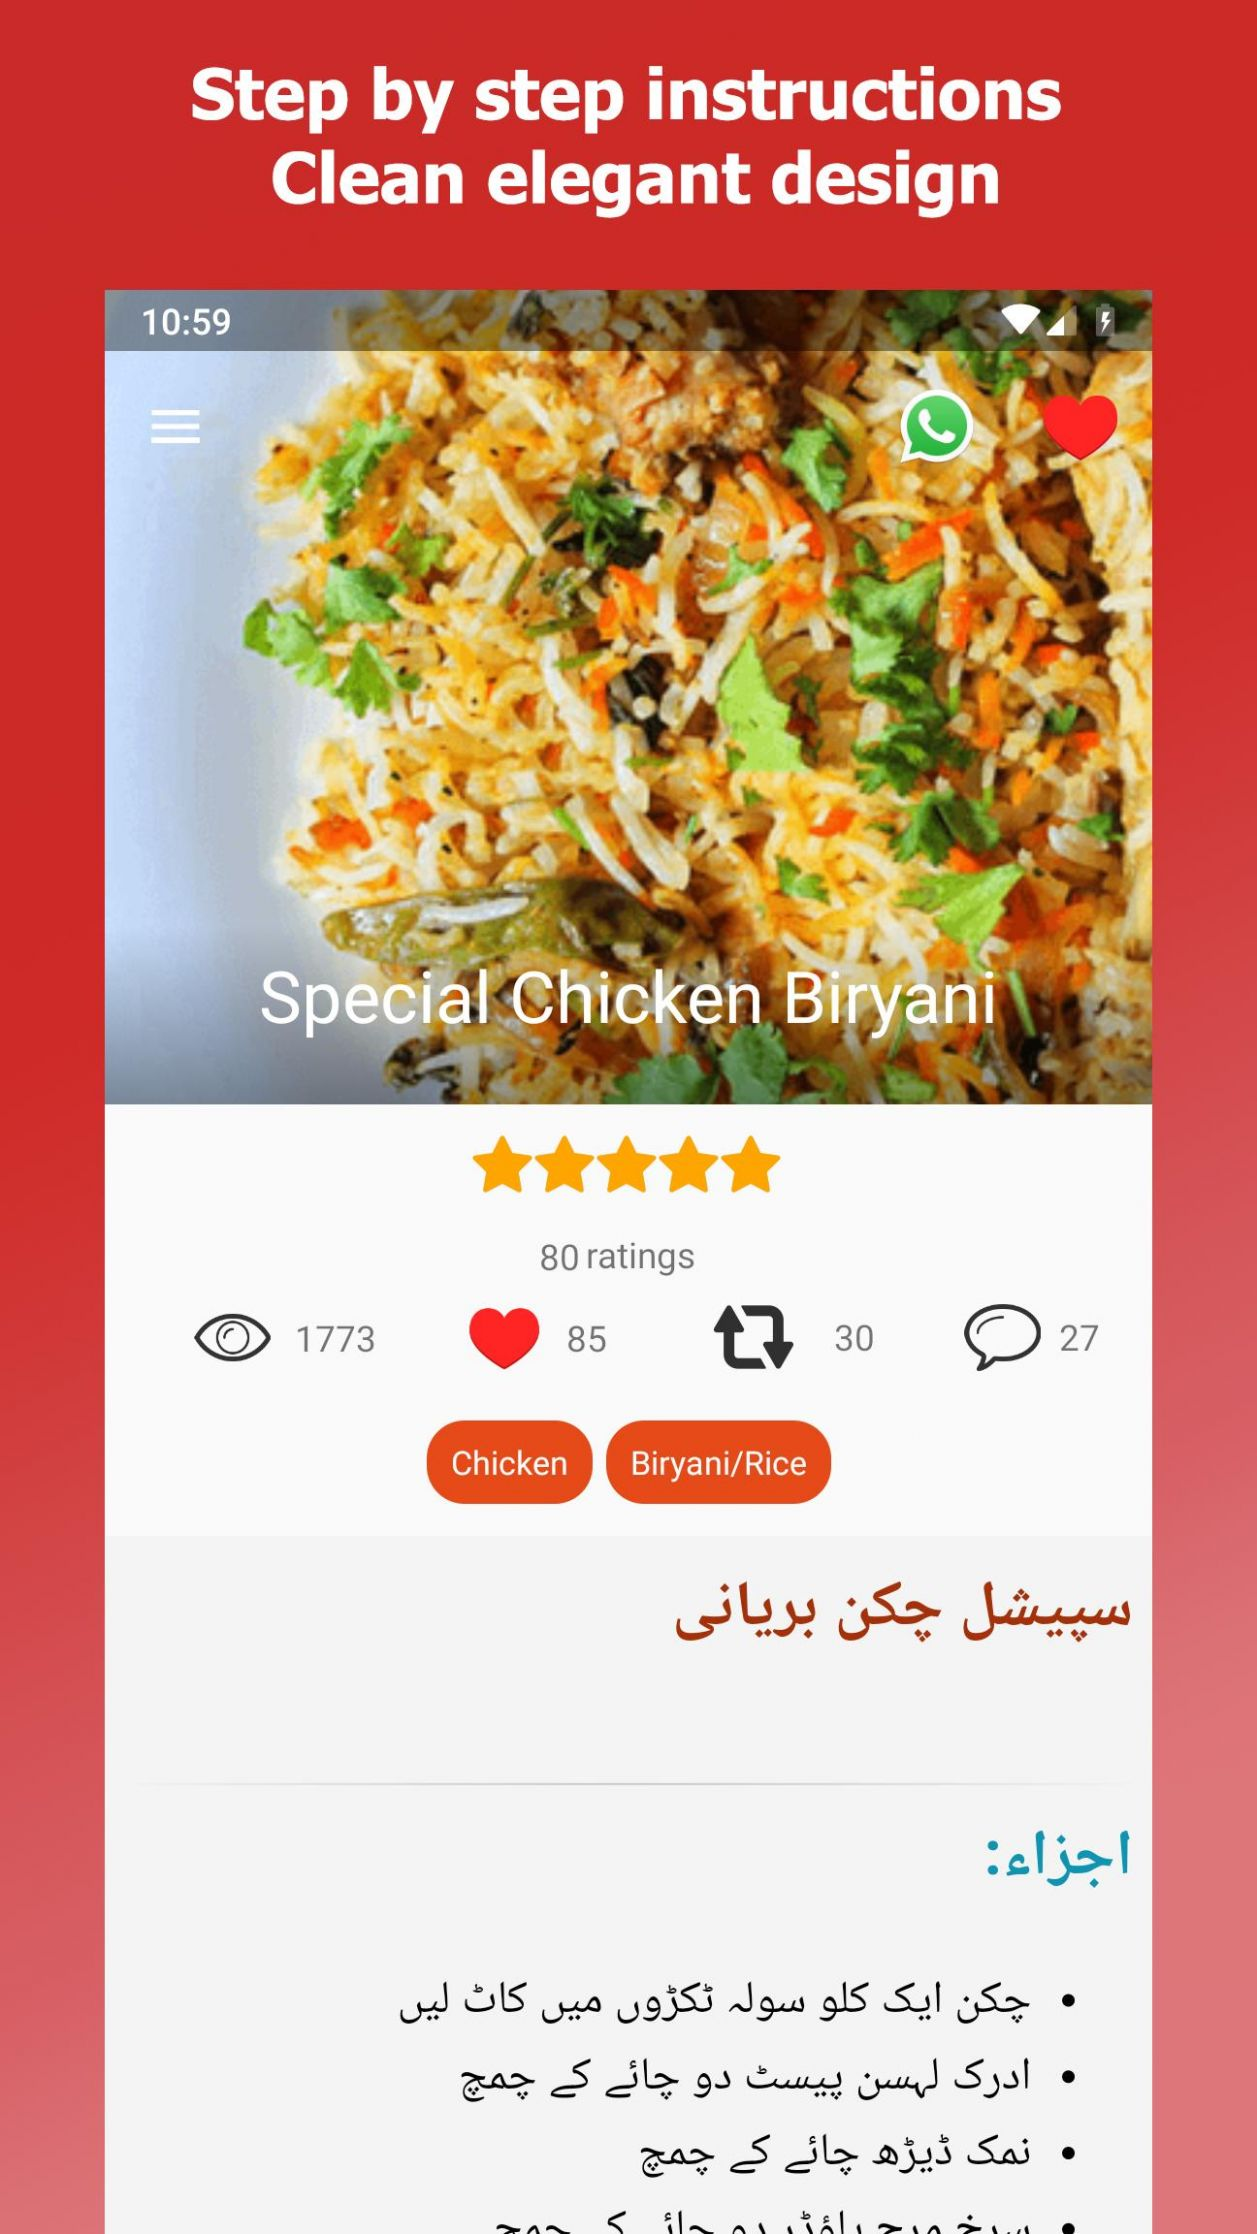 Pakistani Recipes in Urdu اردو for Android - APK Download - Pakistani Recipes Urdu Language